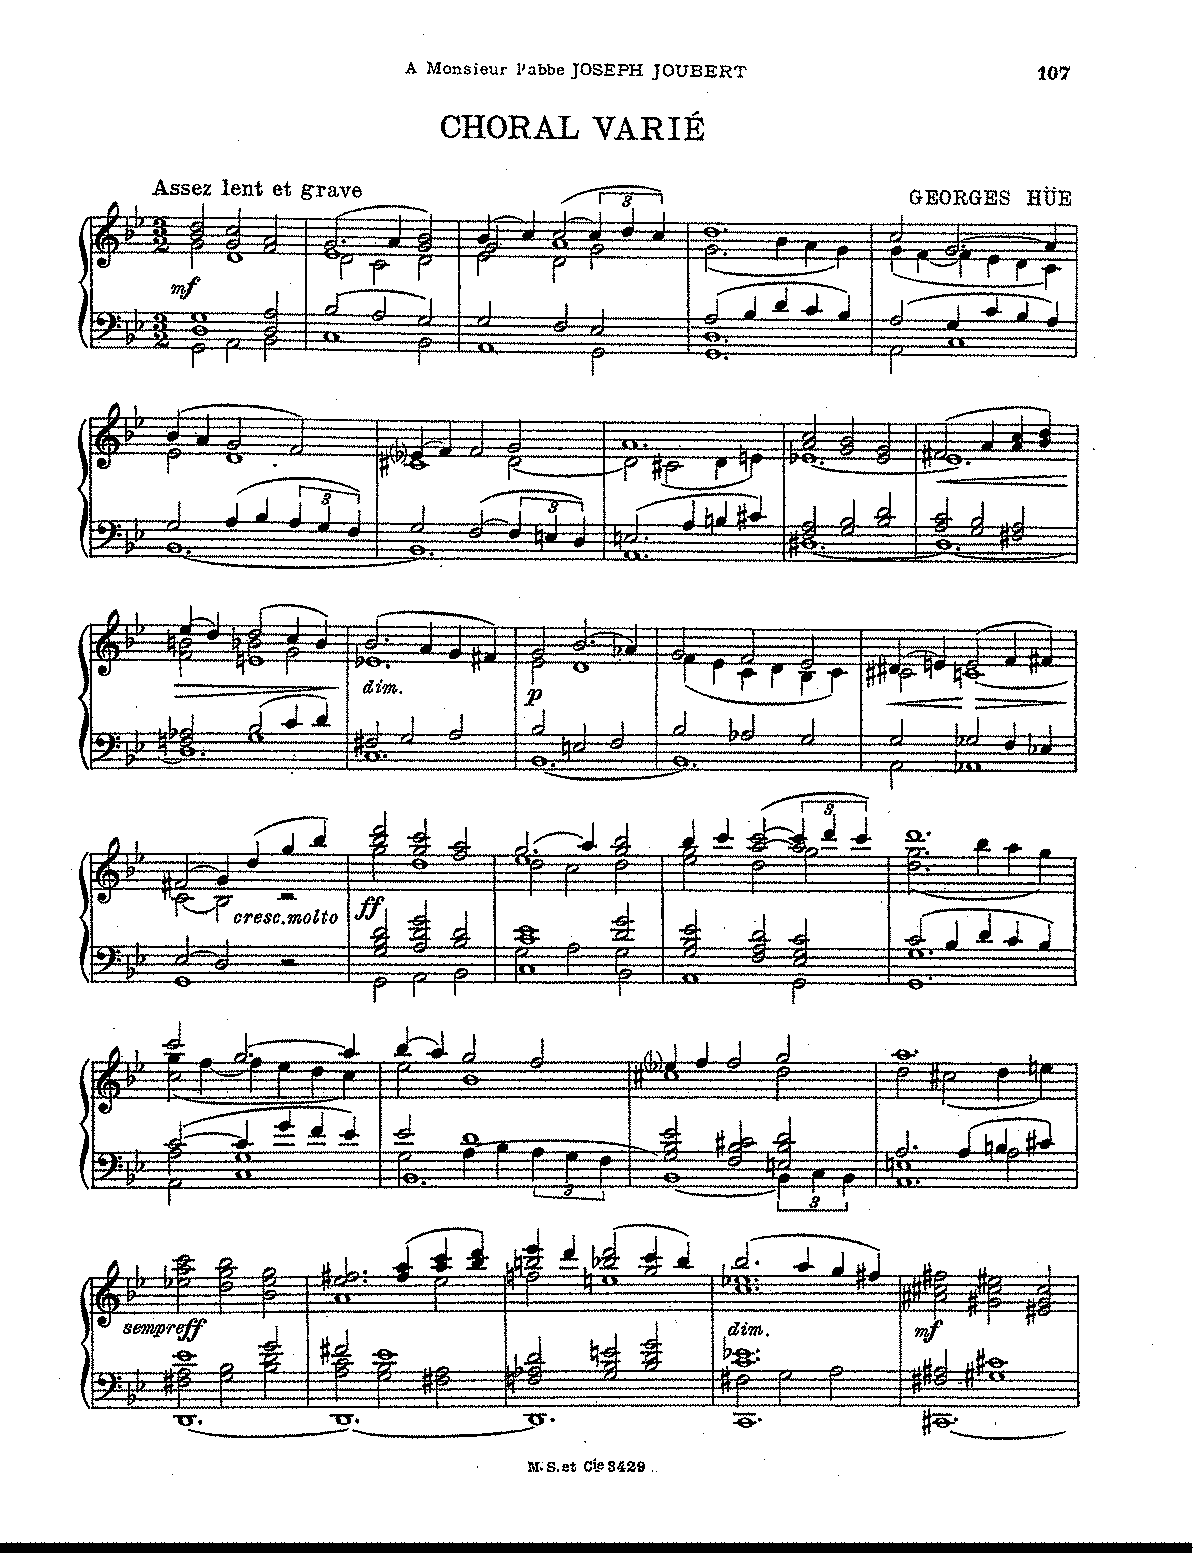 Hue - Choral Varié (for organ).pdf